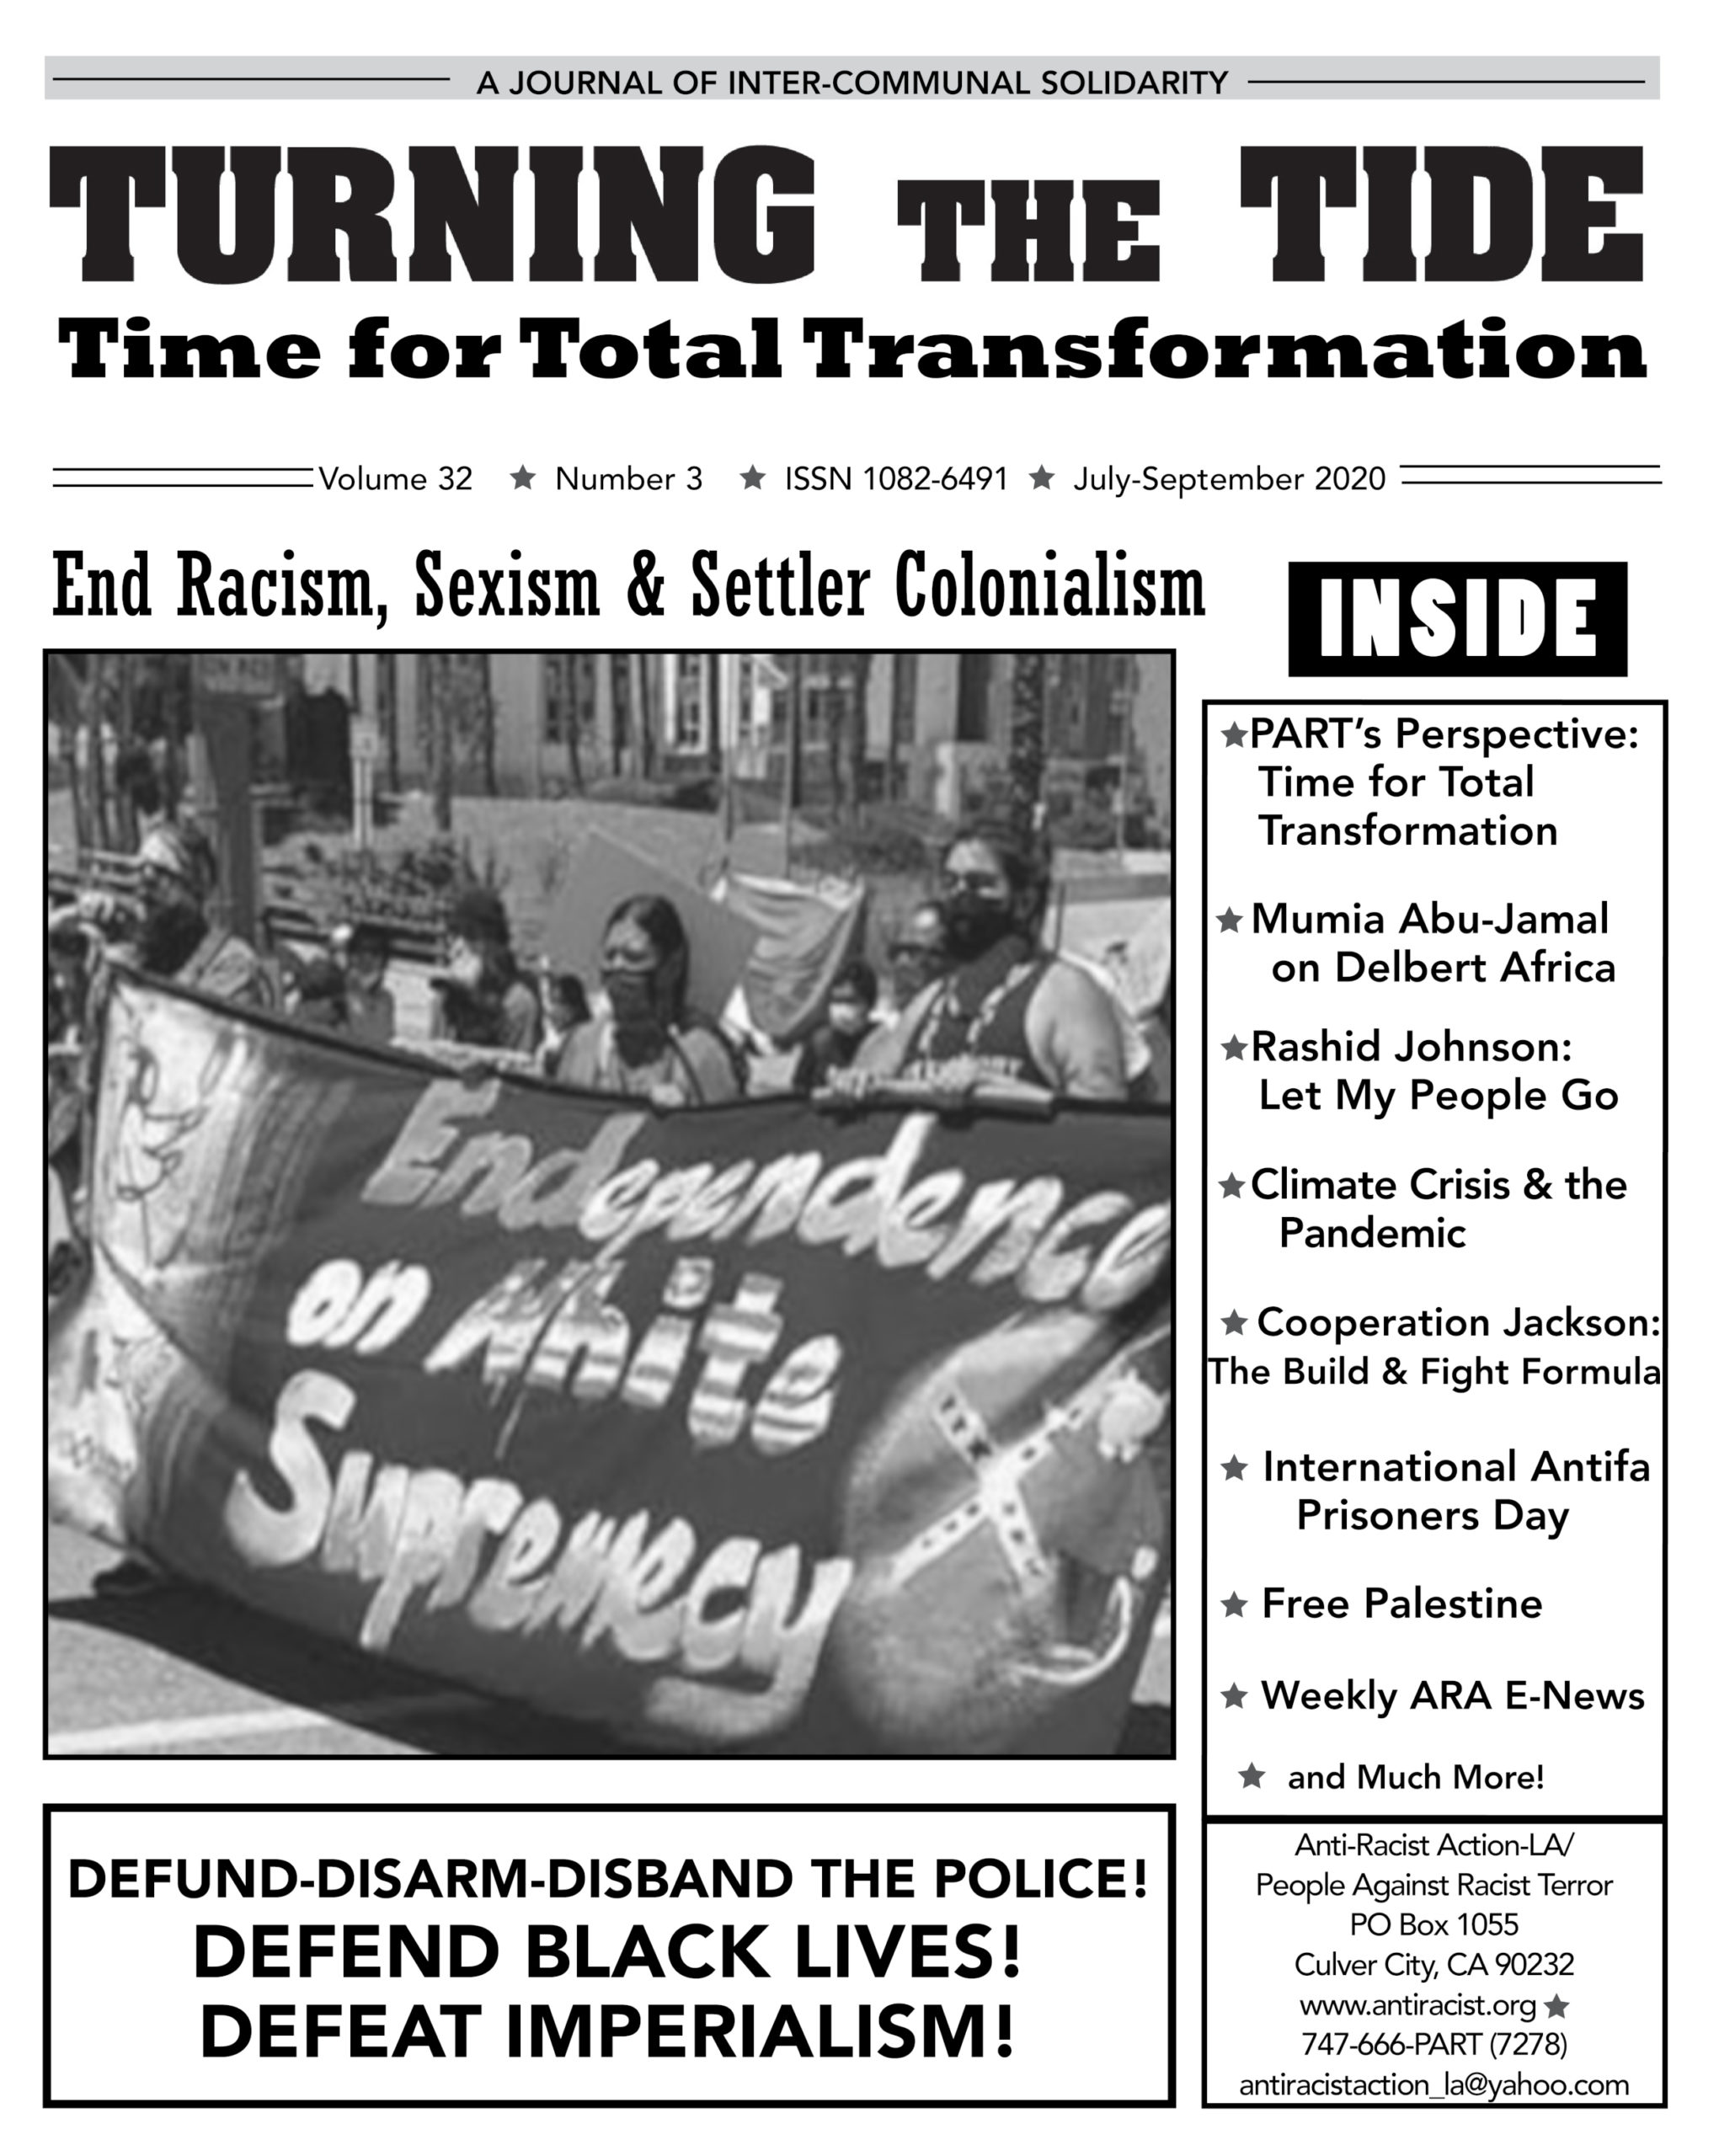 July-Sept 2020 issue of Turning The Tide v. 32 #3